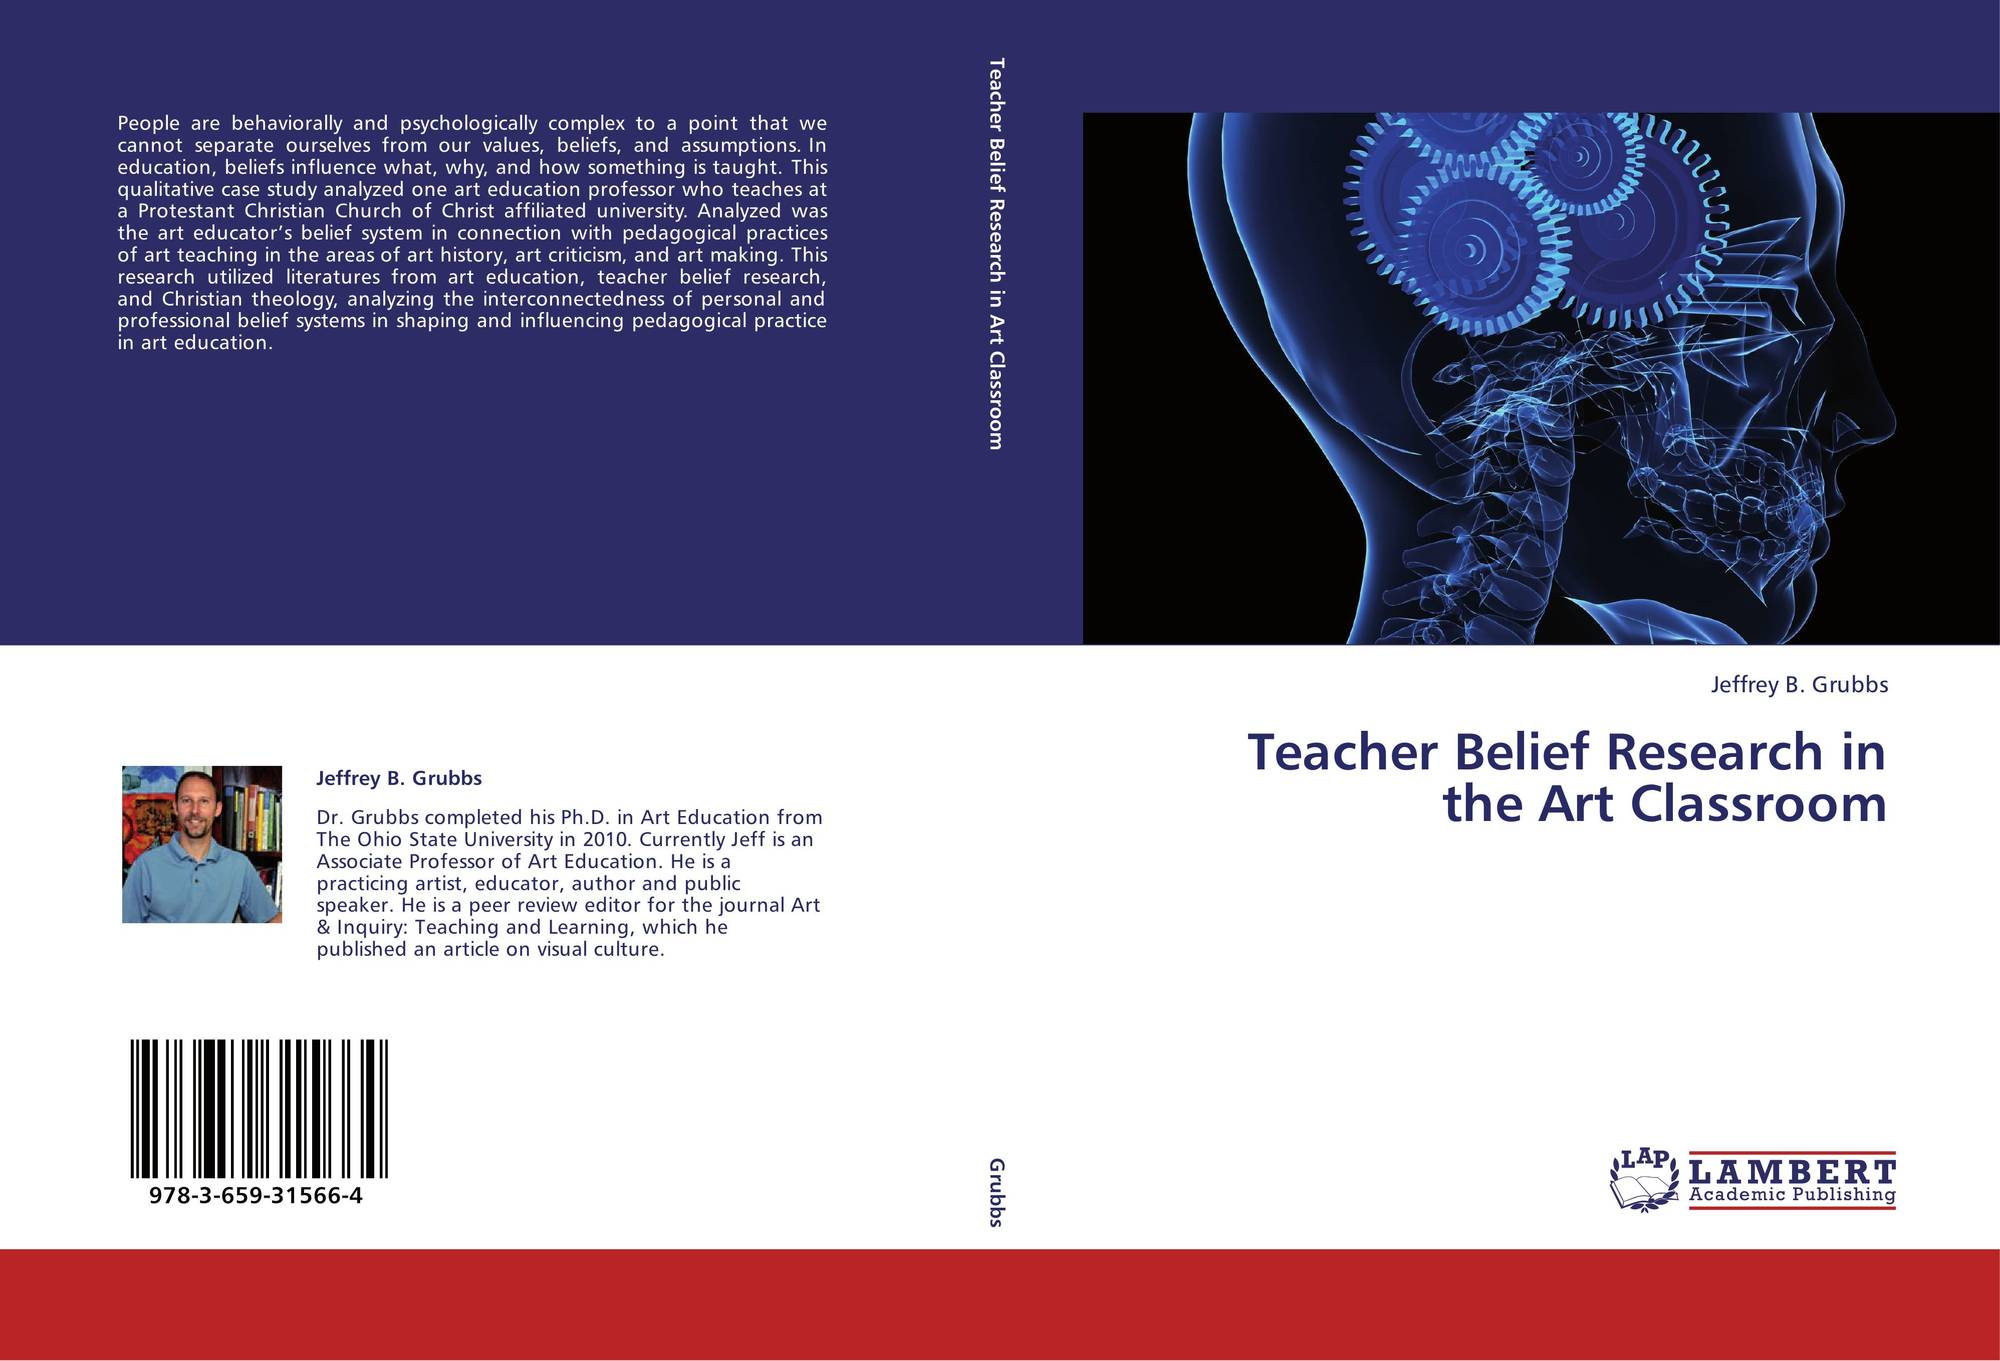 an analysis of the belief system in the education Foundations: c 8000 bce-600 ce major developments major belief systems  basic features of major world belief systems prior to 600 ce and where each belief system applied by 600 ce.